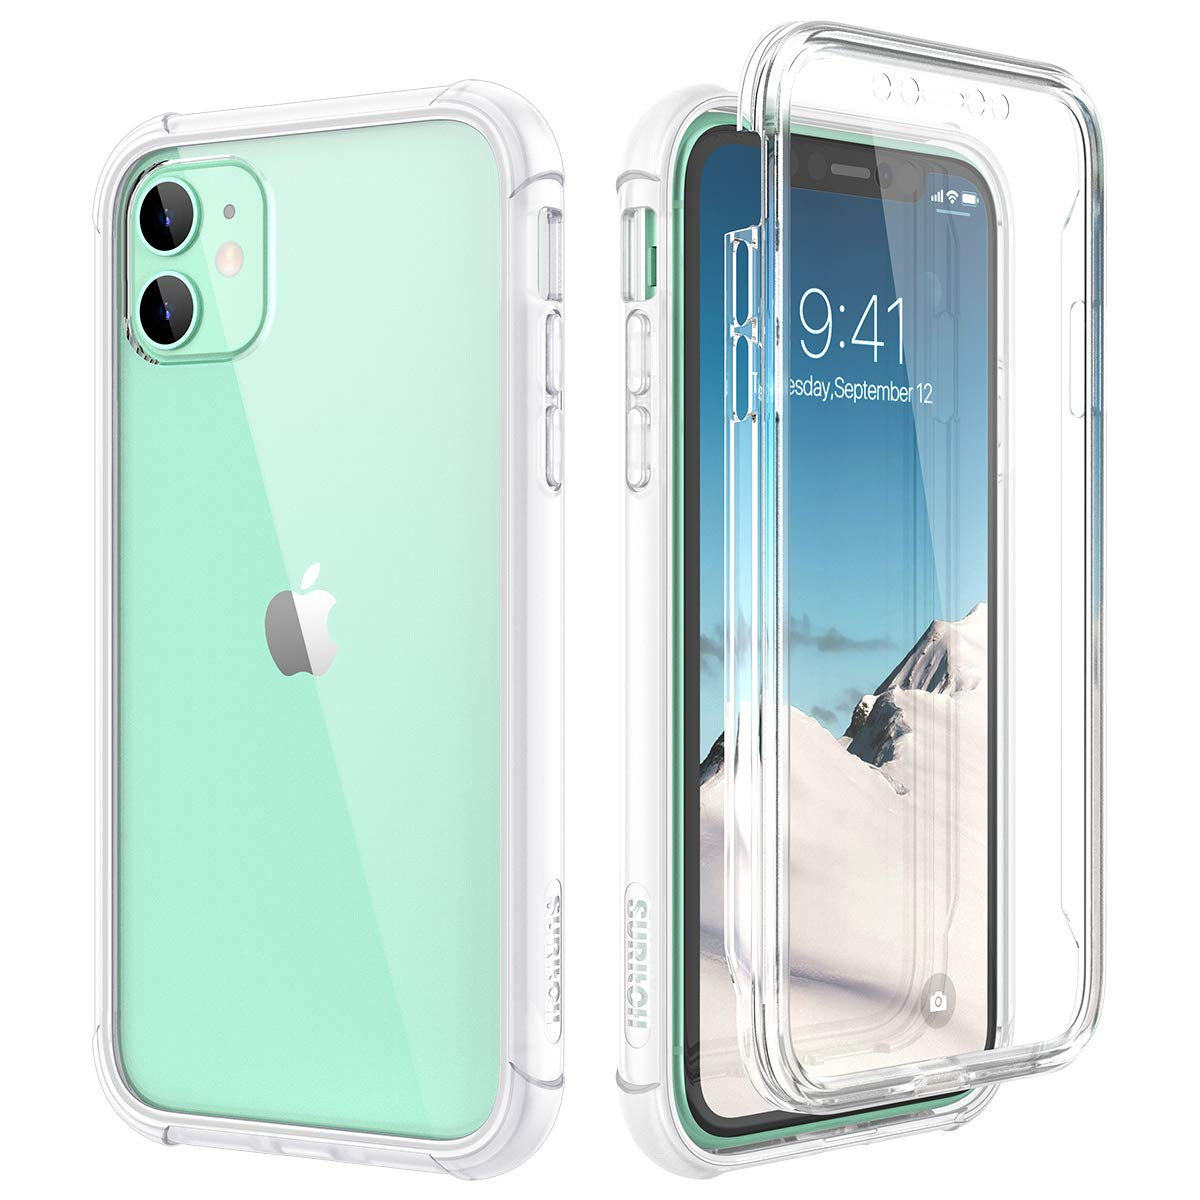 """SURITCH Clear Case for iPhone 11,【Built in Screen Protector】【Support Wireless Charging】 Hybrid Protection Hard Shell+Soft TPU Rubber Bumper Rugged Case Shockproof for iPhone 11 6.1""""(Clear)"""